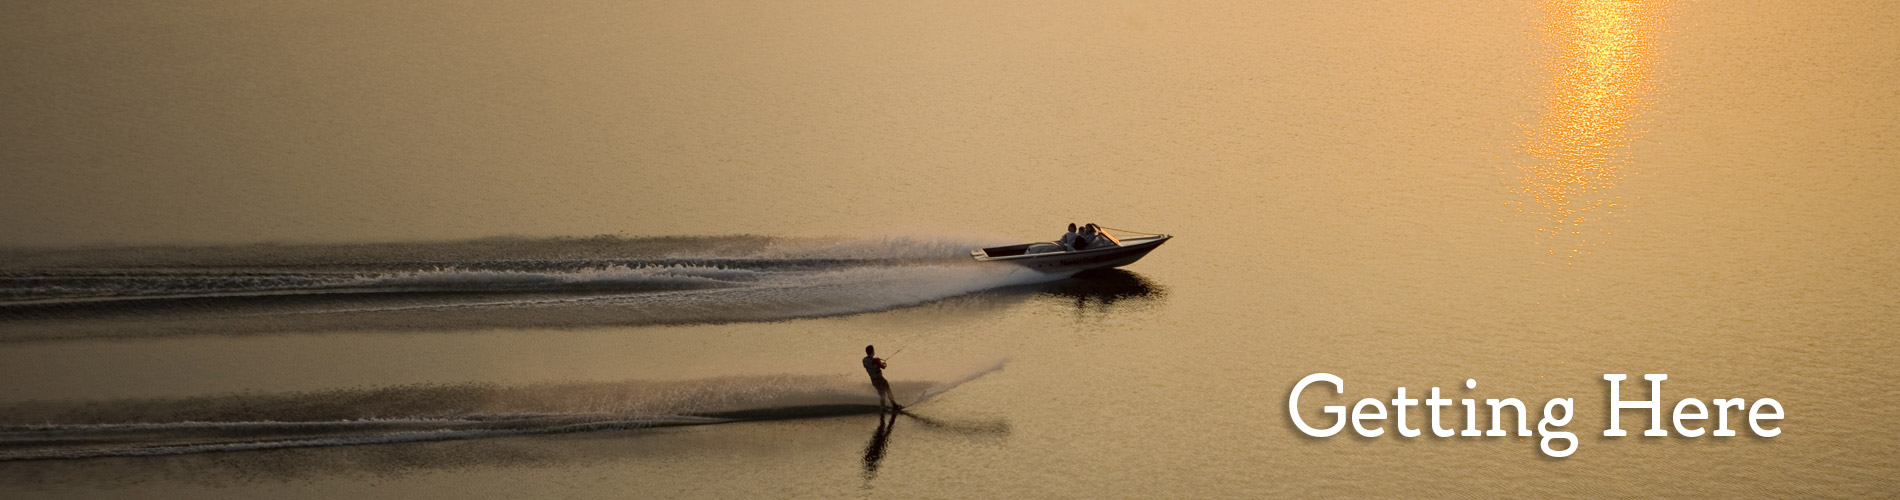 boat and skiier